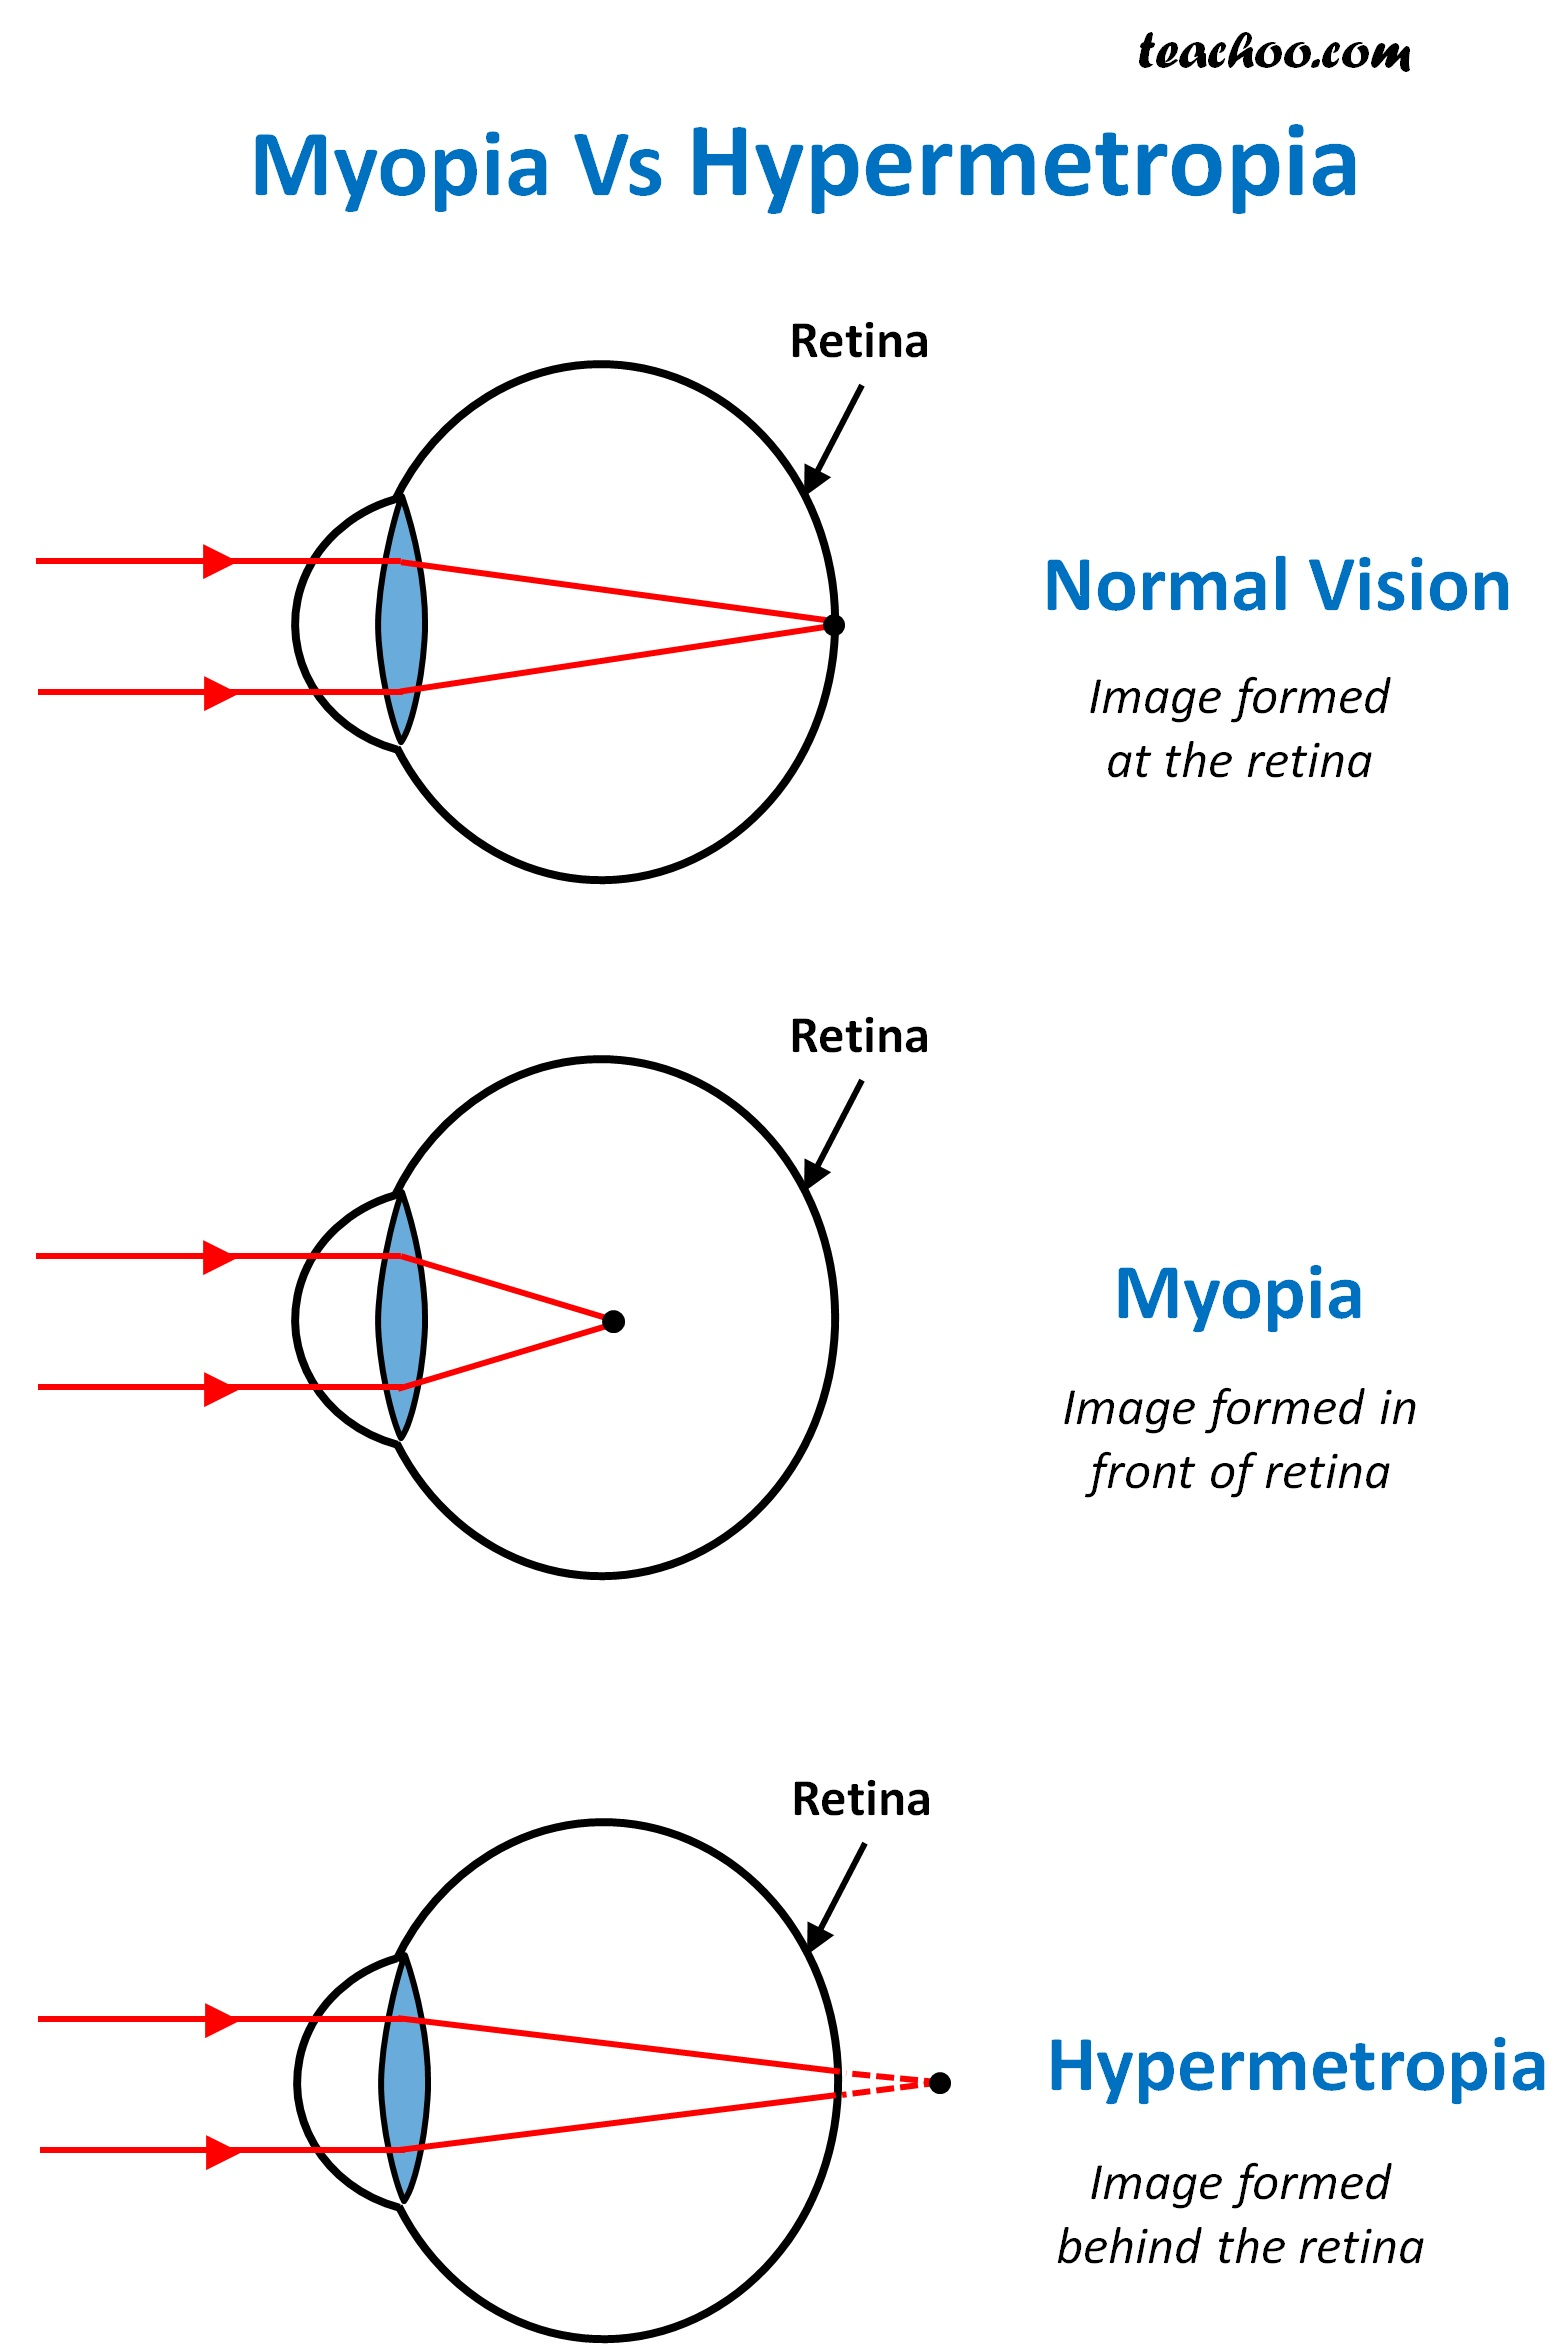 What Is The Difference Between Myopia And Hypermetropia